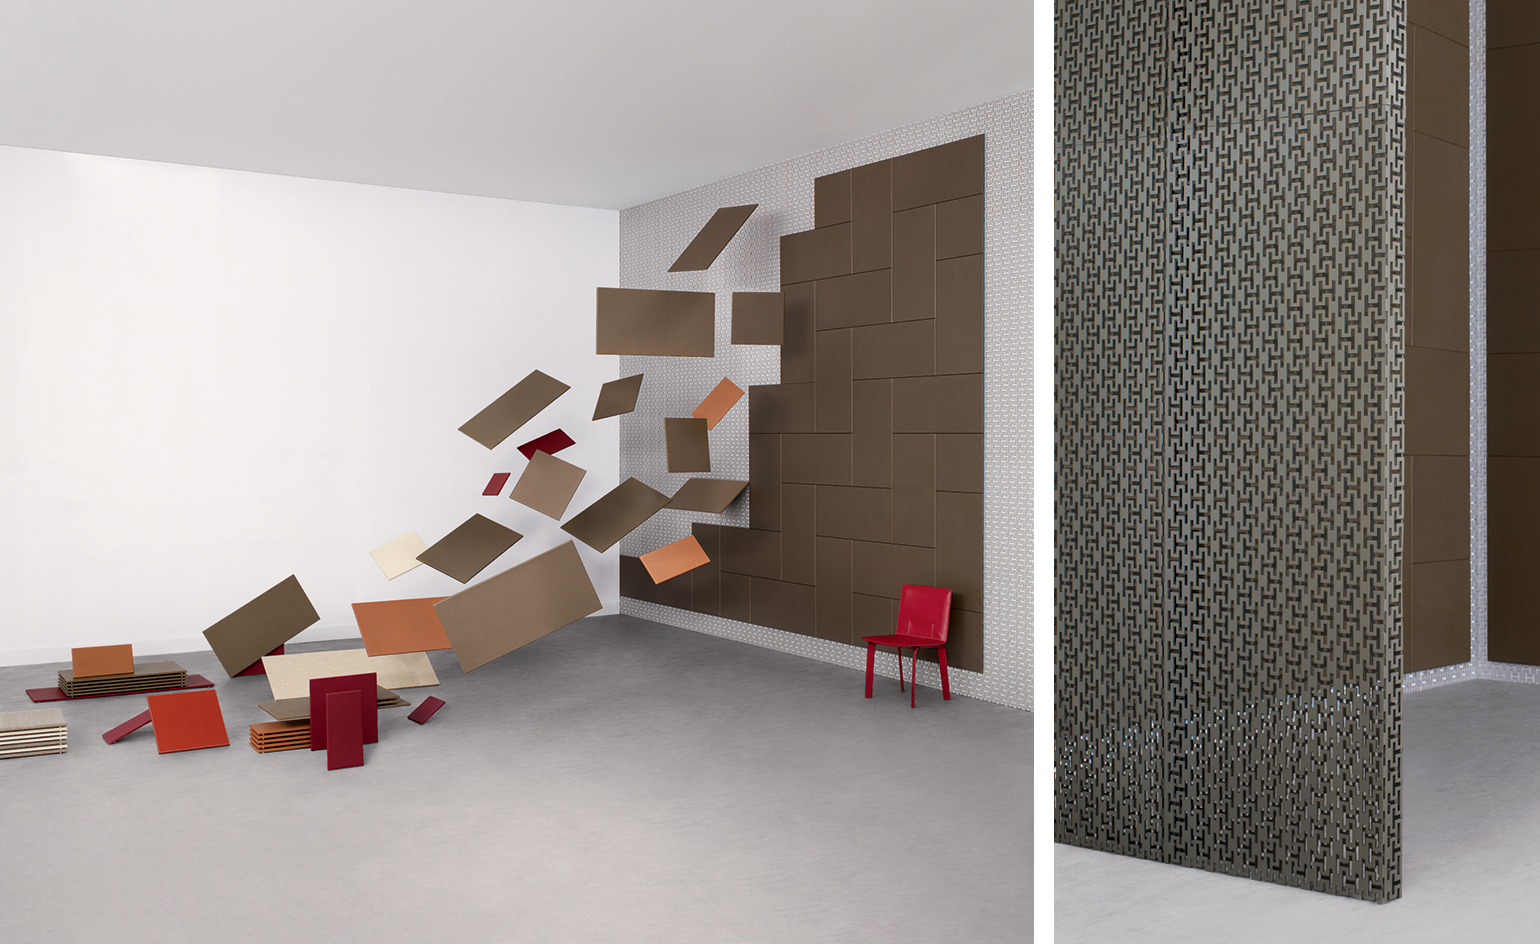 Shigeru Ban: The Japanese architect is known for his masterful work with wood, paper and cardboard. Pictured: customisable wall system for Hermès  Read more at https://www.wallpaper.com/design/top-20-architects-who-have-turned-their-hand-to-product-design#2e3ompB8yJVmfYLT.99